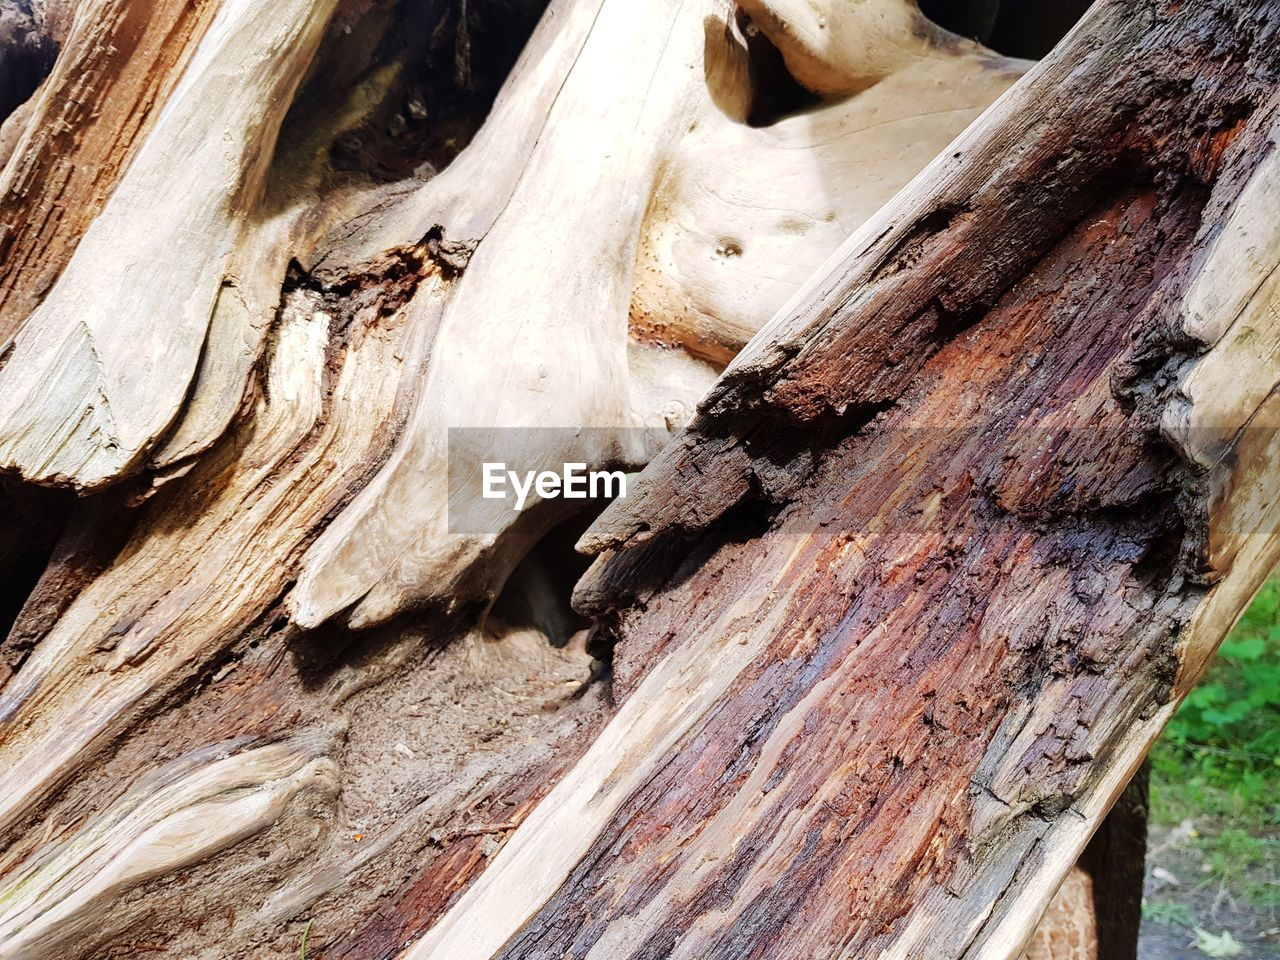 wood - material, tree trunk, textured, tree, nature, day, outdoors, close-up, pattern, no people, bark, backgrounds, full frame, dead tree